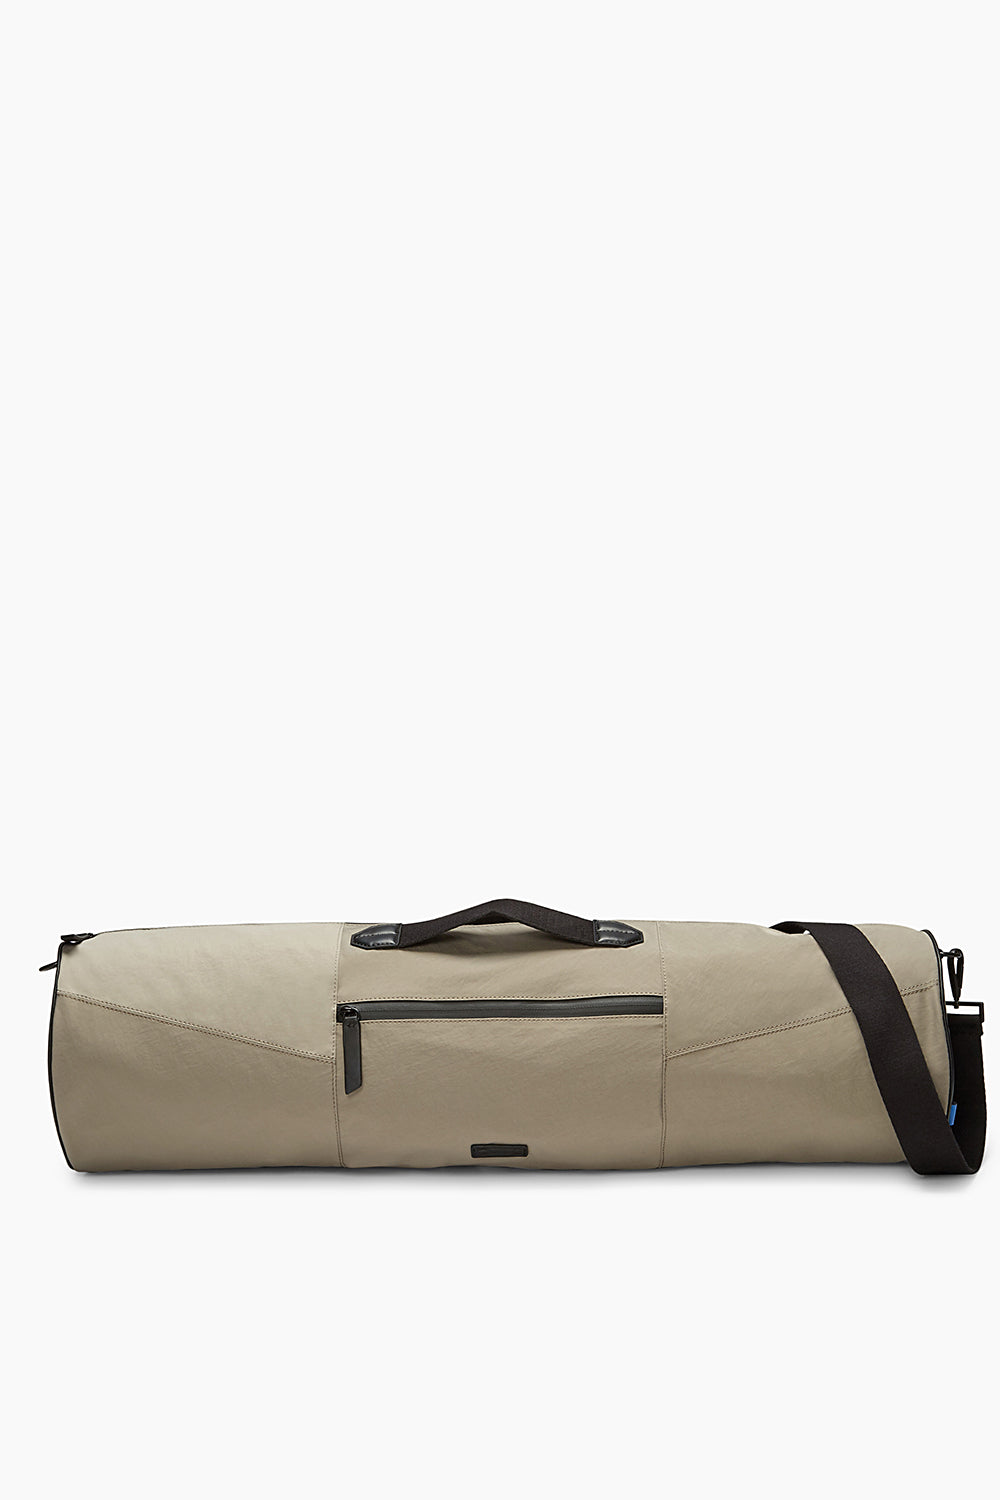 River Yoga Bag in Taupe